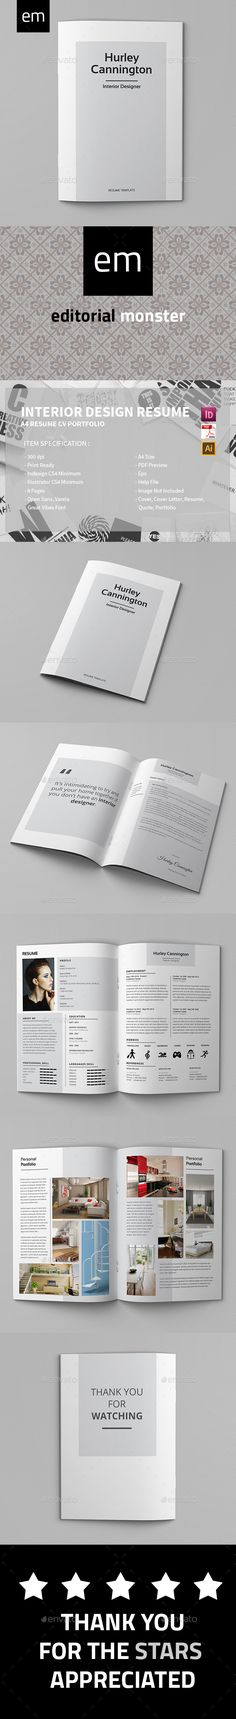 Claire Callis    Interior Design Resume Design Pinterest - examples of interior design resumes